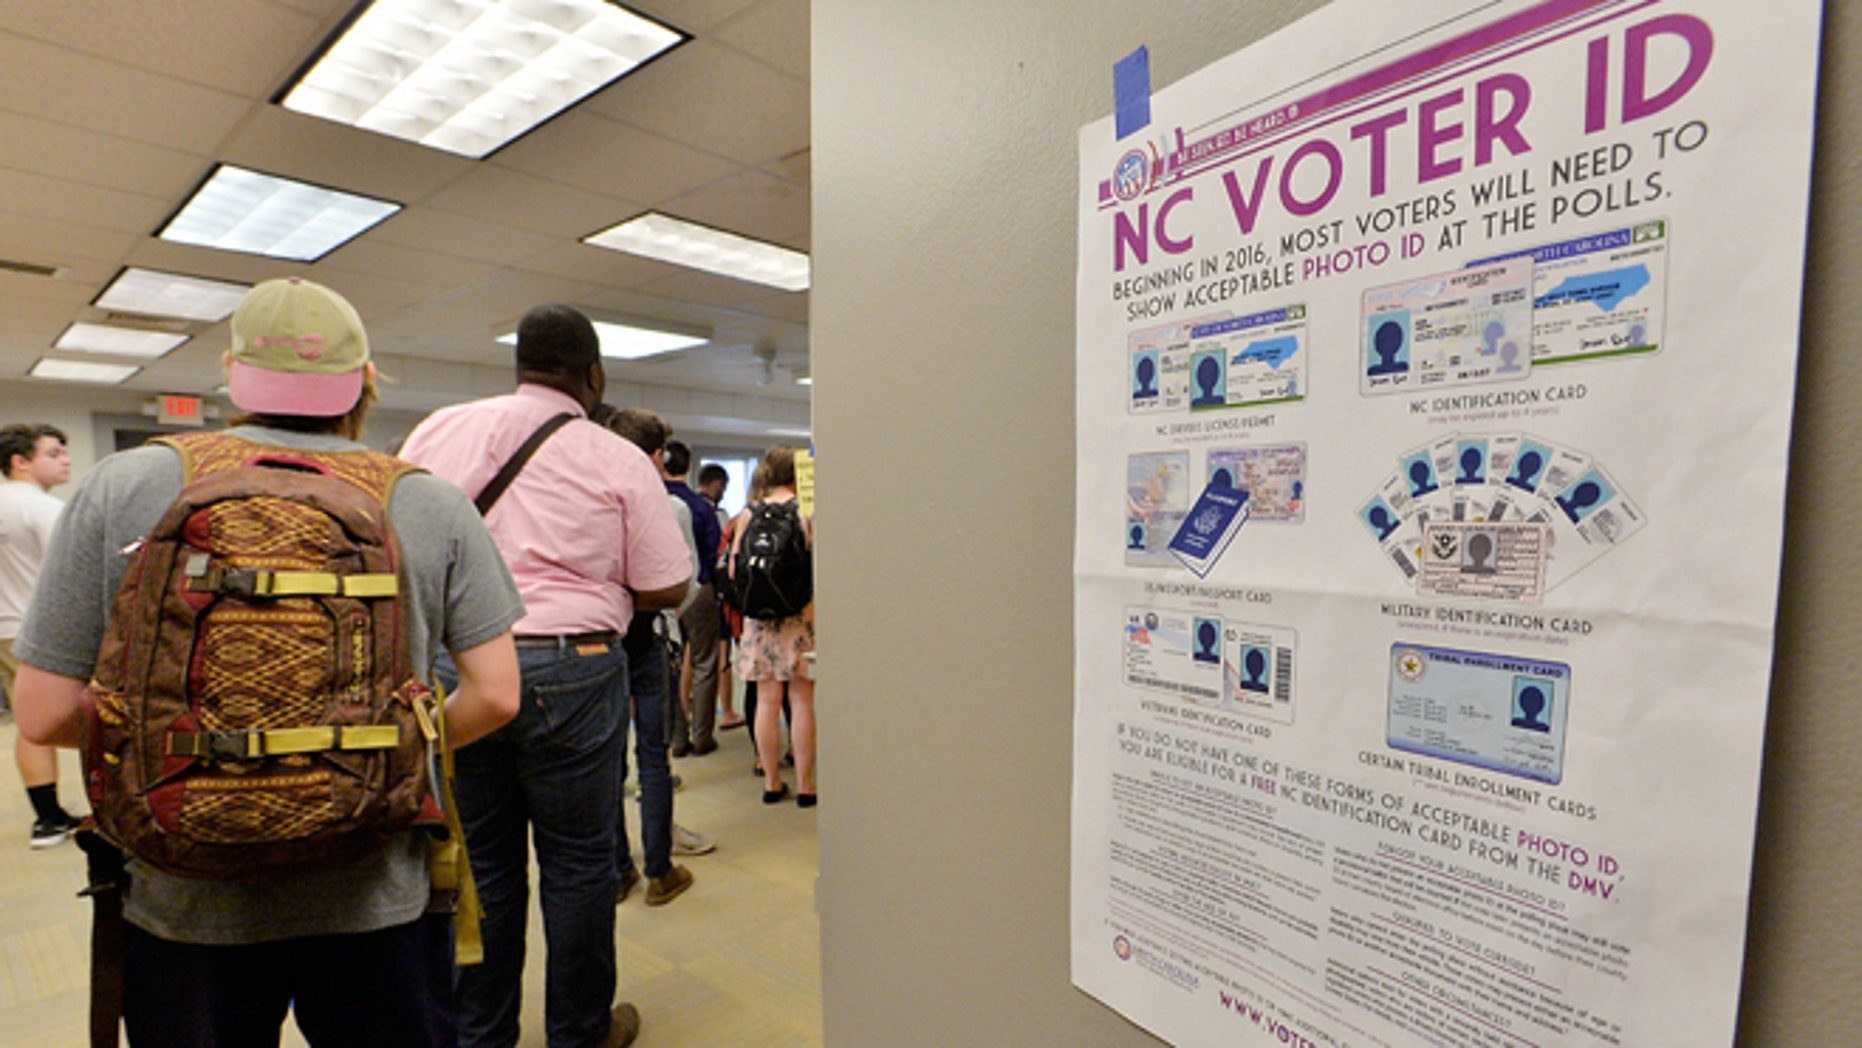 North Carolina State University students wait in line to vote in the primaries at Pullen Community Center on March 15, 2016.